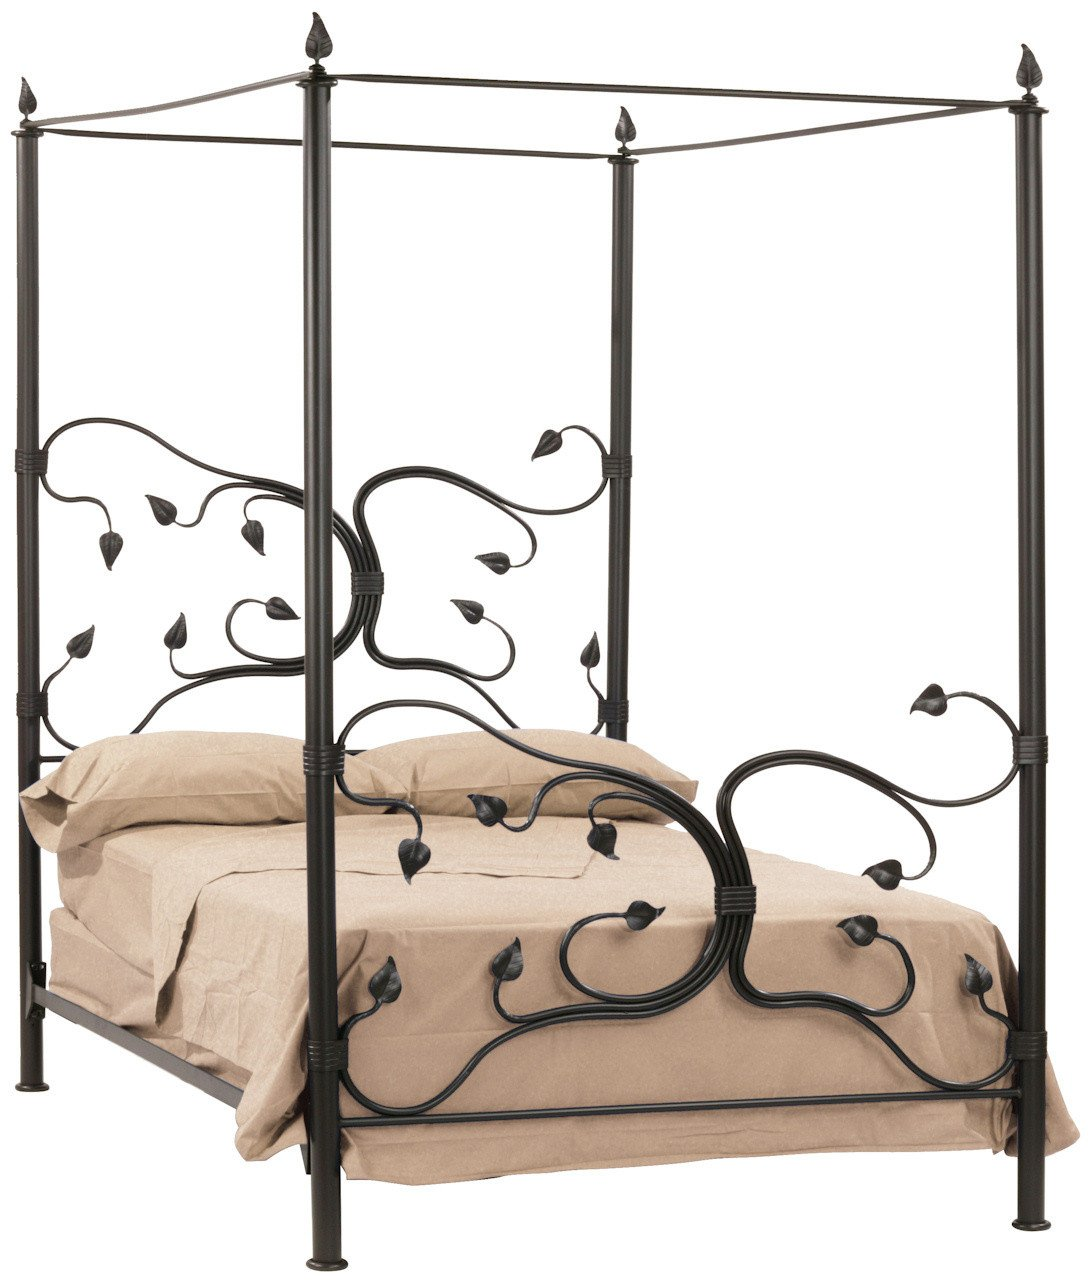 Isle Canopy Full Bed 972 Product Photo